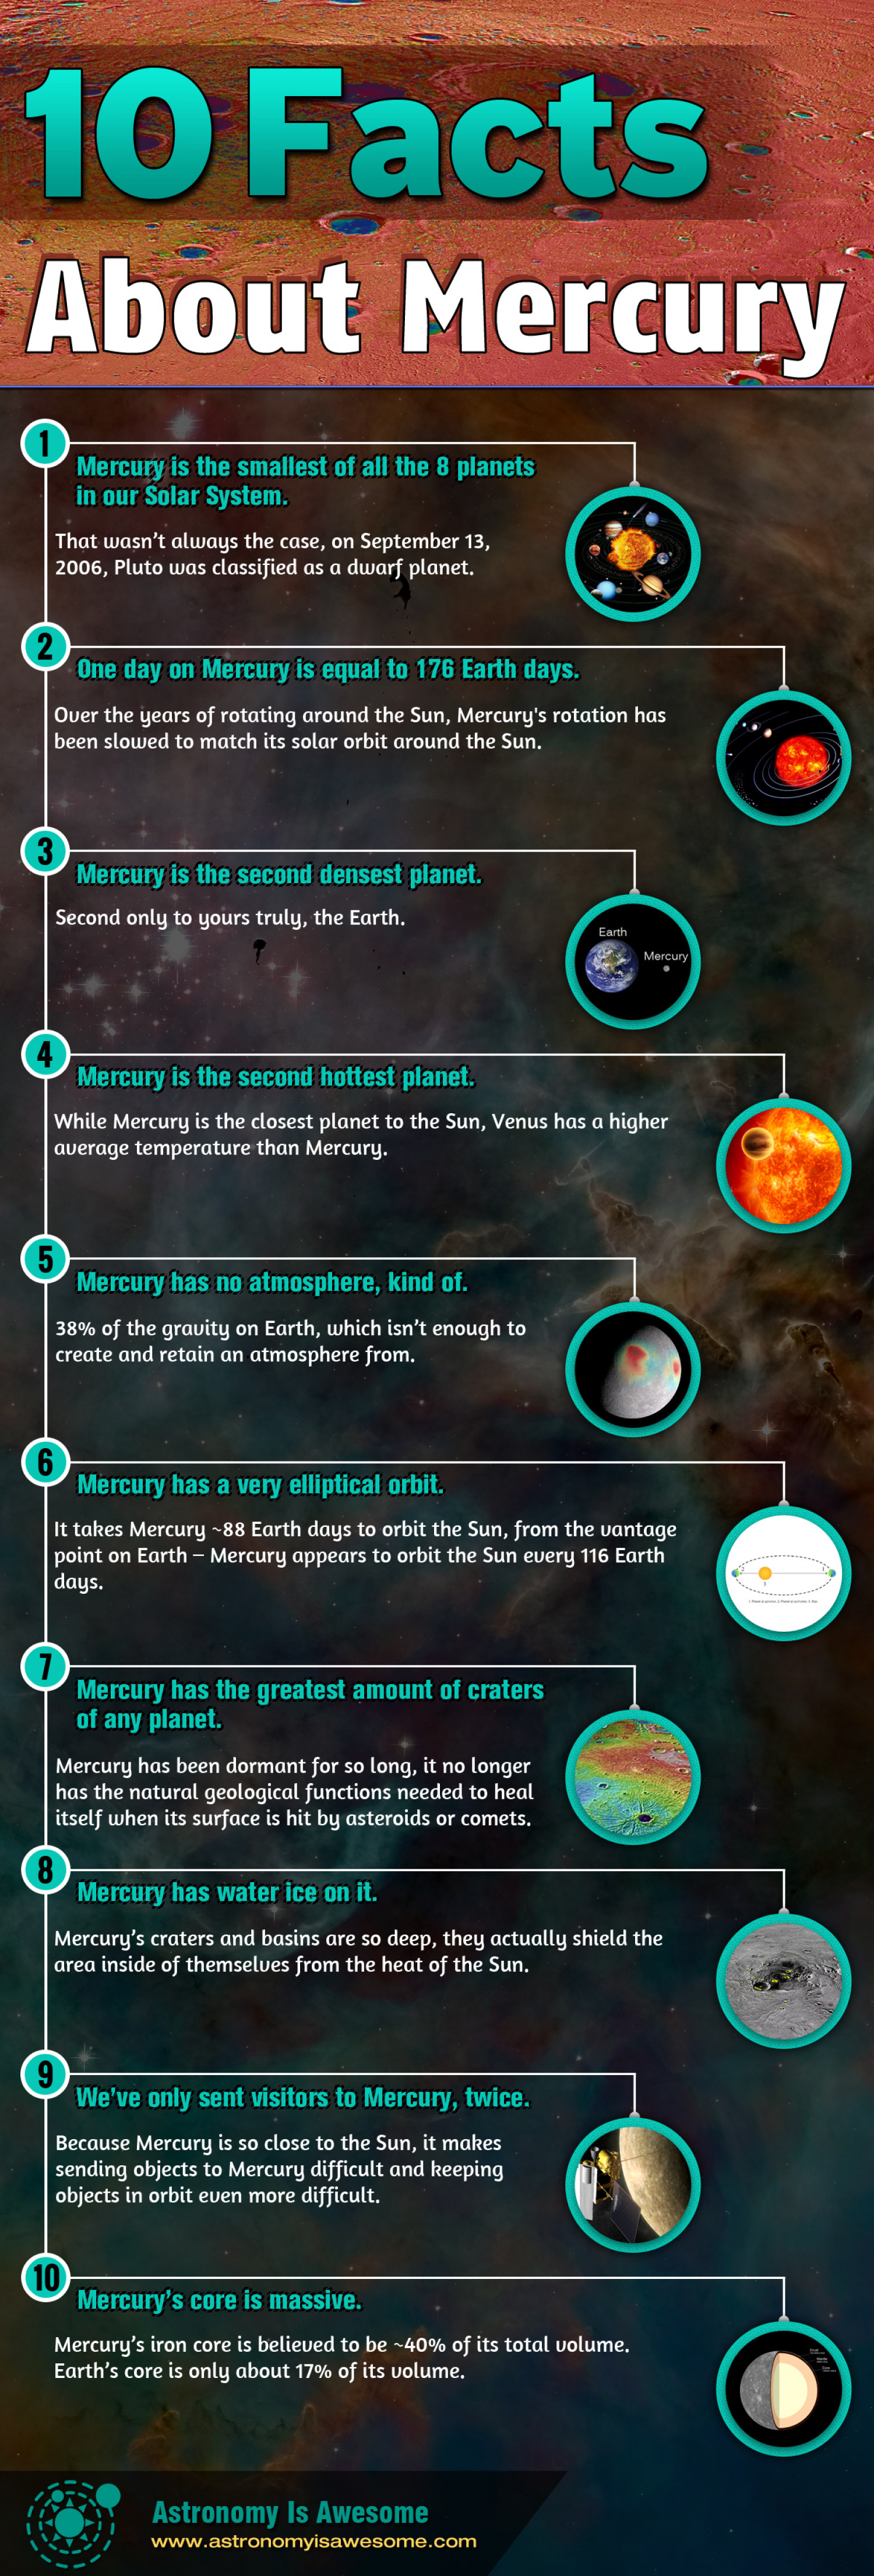 10 Facts About Mercury Infographic